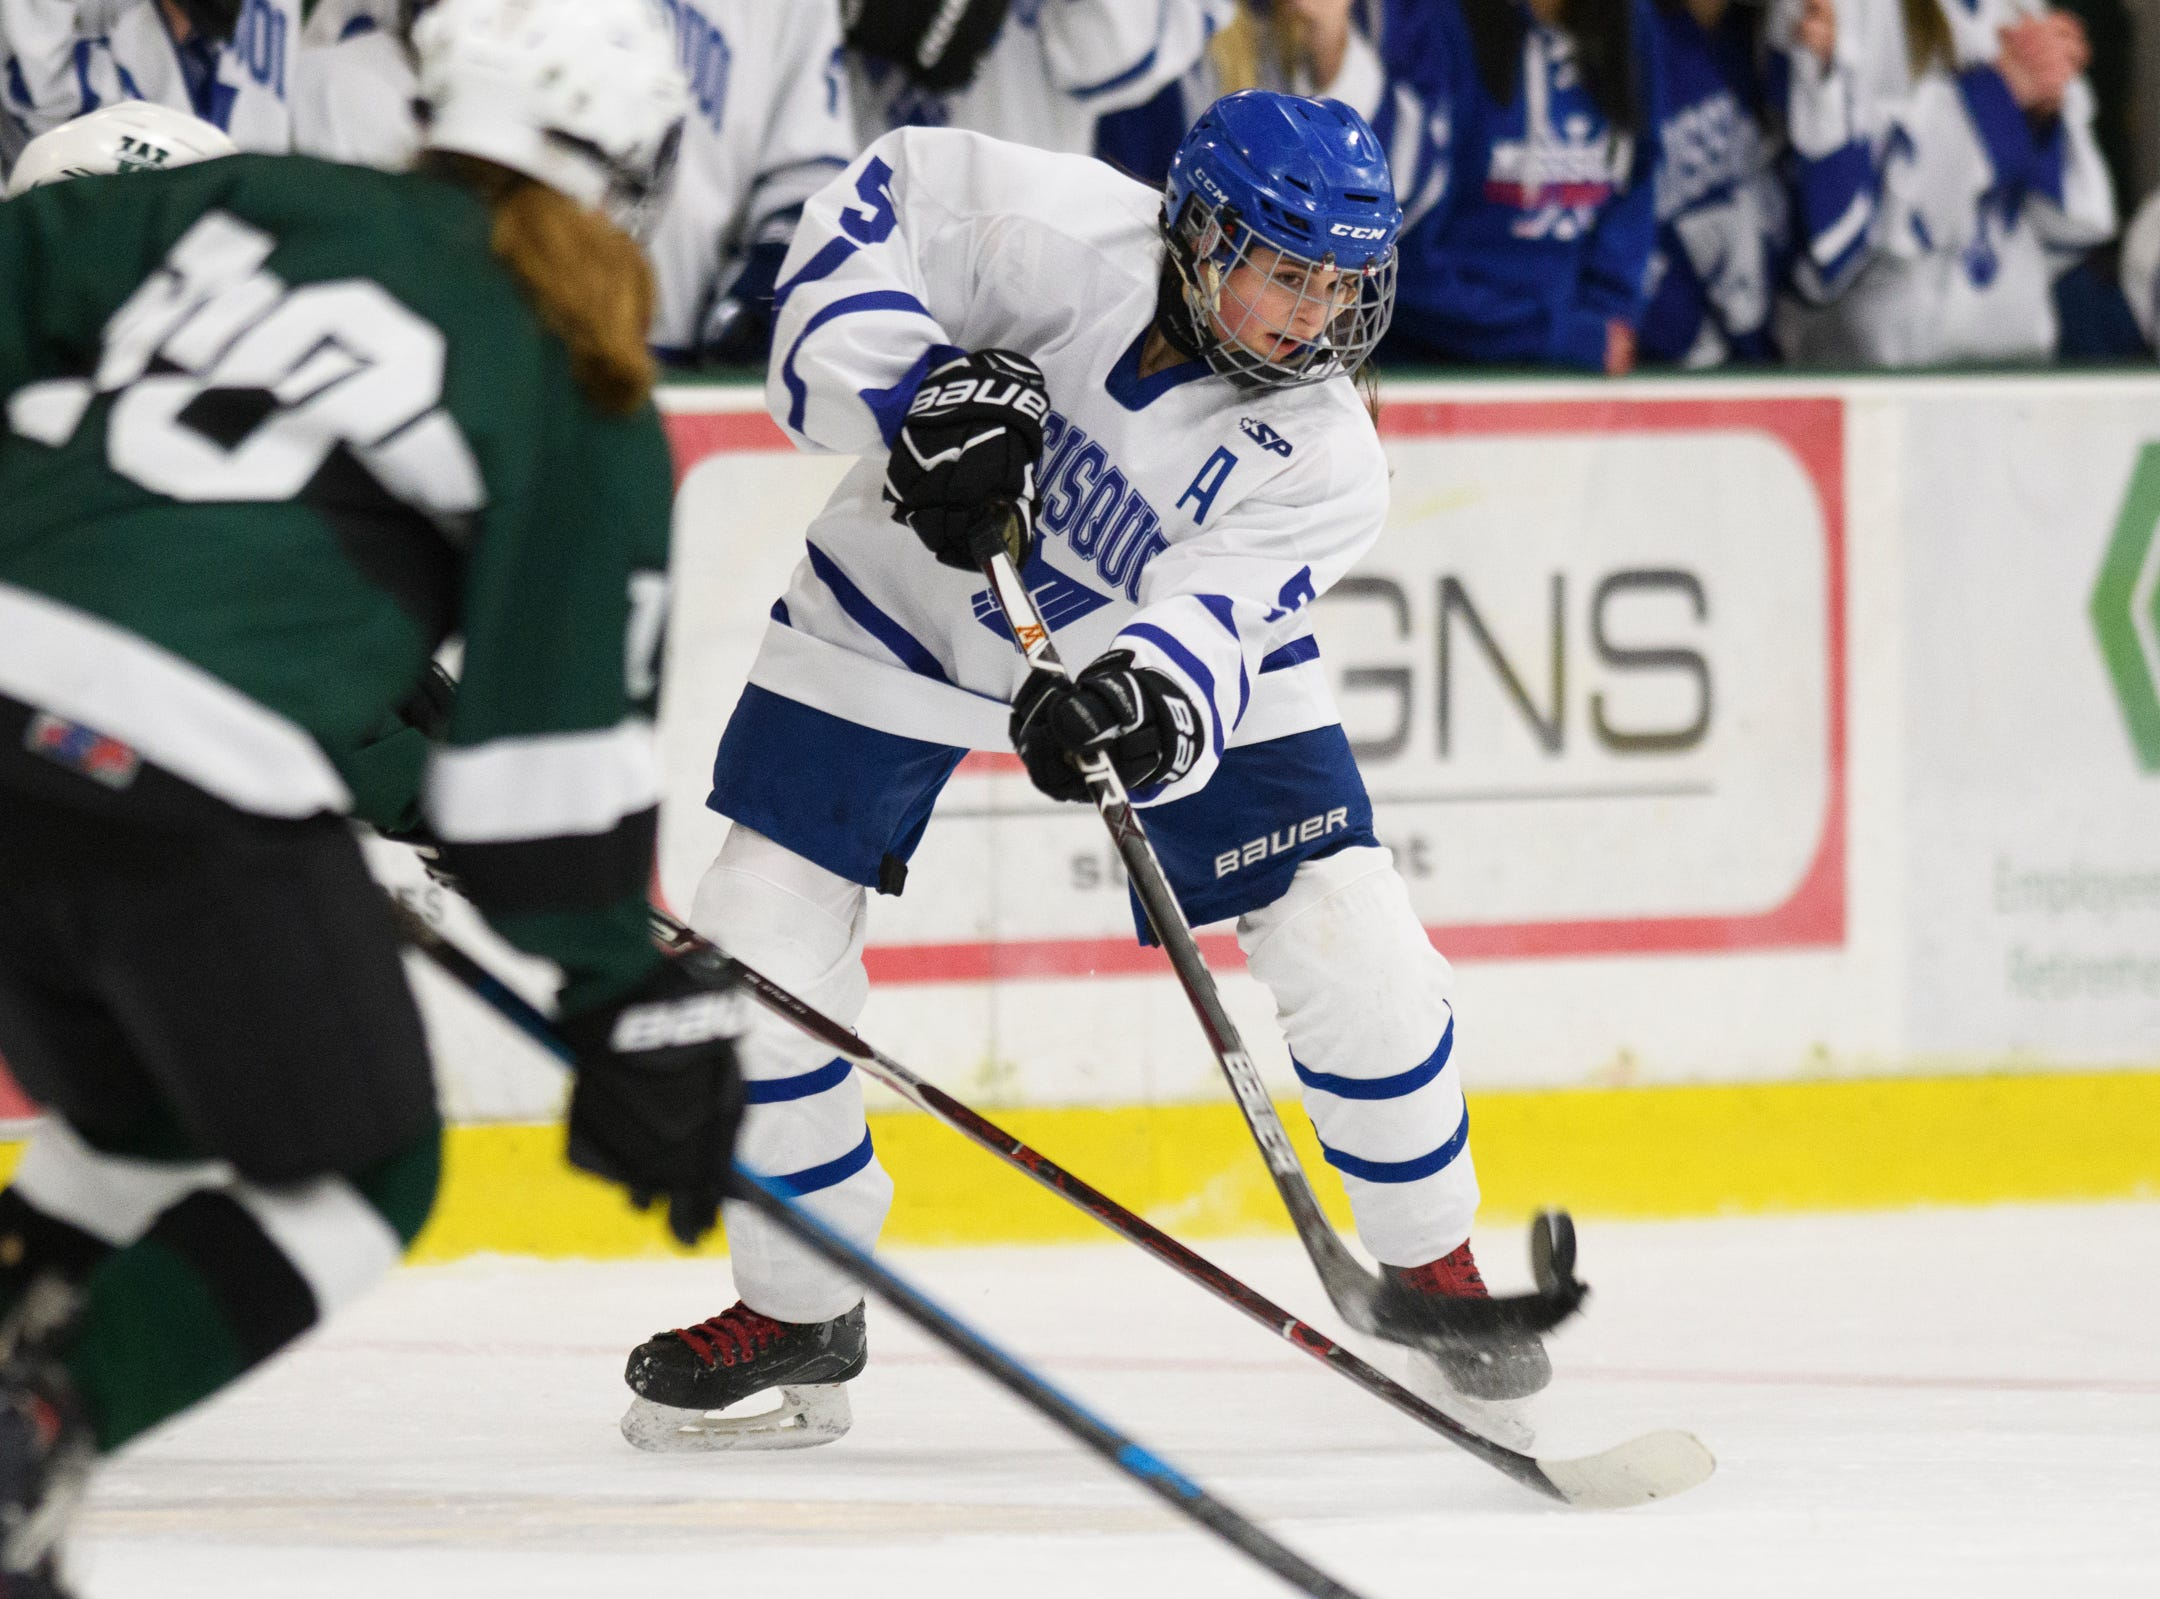 Missisquoi's Brianna Parent (5) shoots the puck during the DII girls hockey championship game between the Woodstock Wasps and the Missisquoi Thunderbirds at Gutterson Field House on Thursday night March 14, 2019 in Burlington, Vermont.